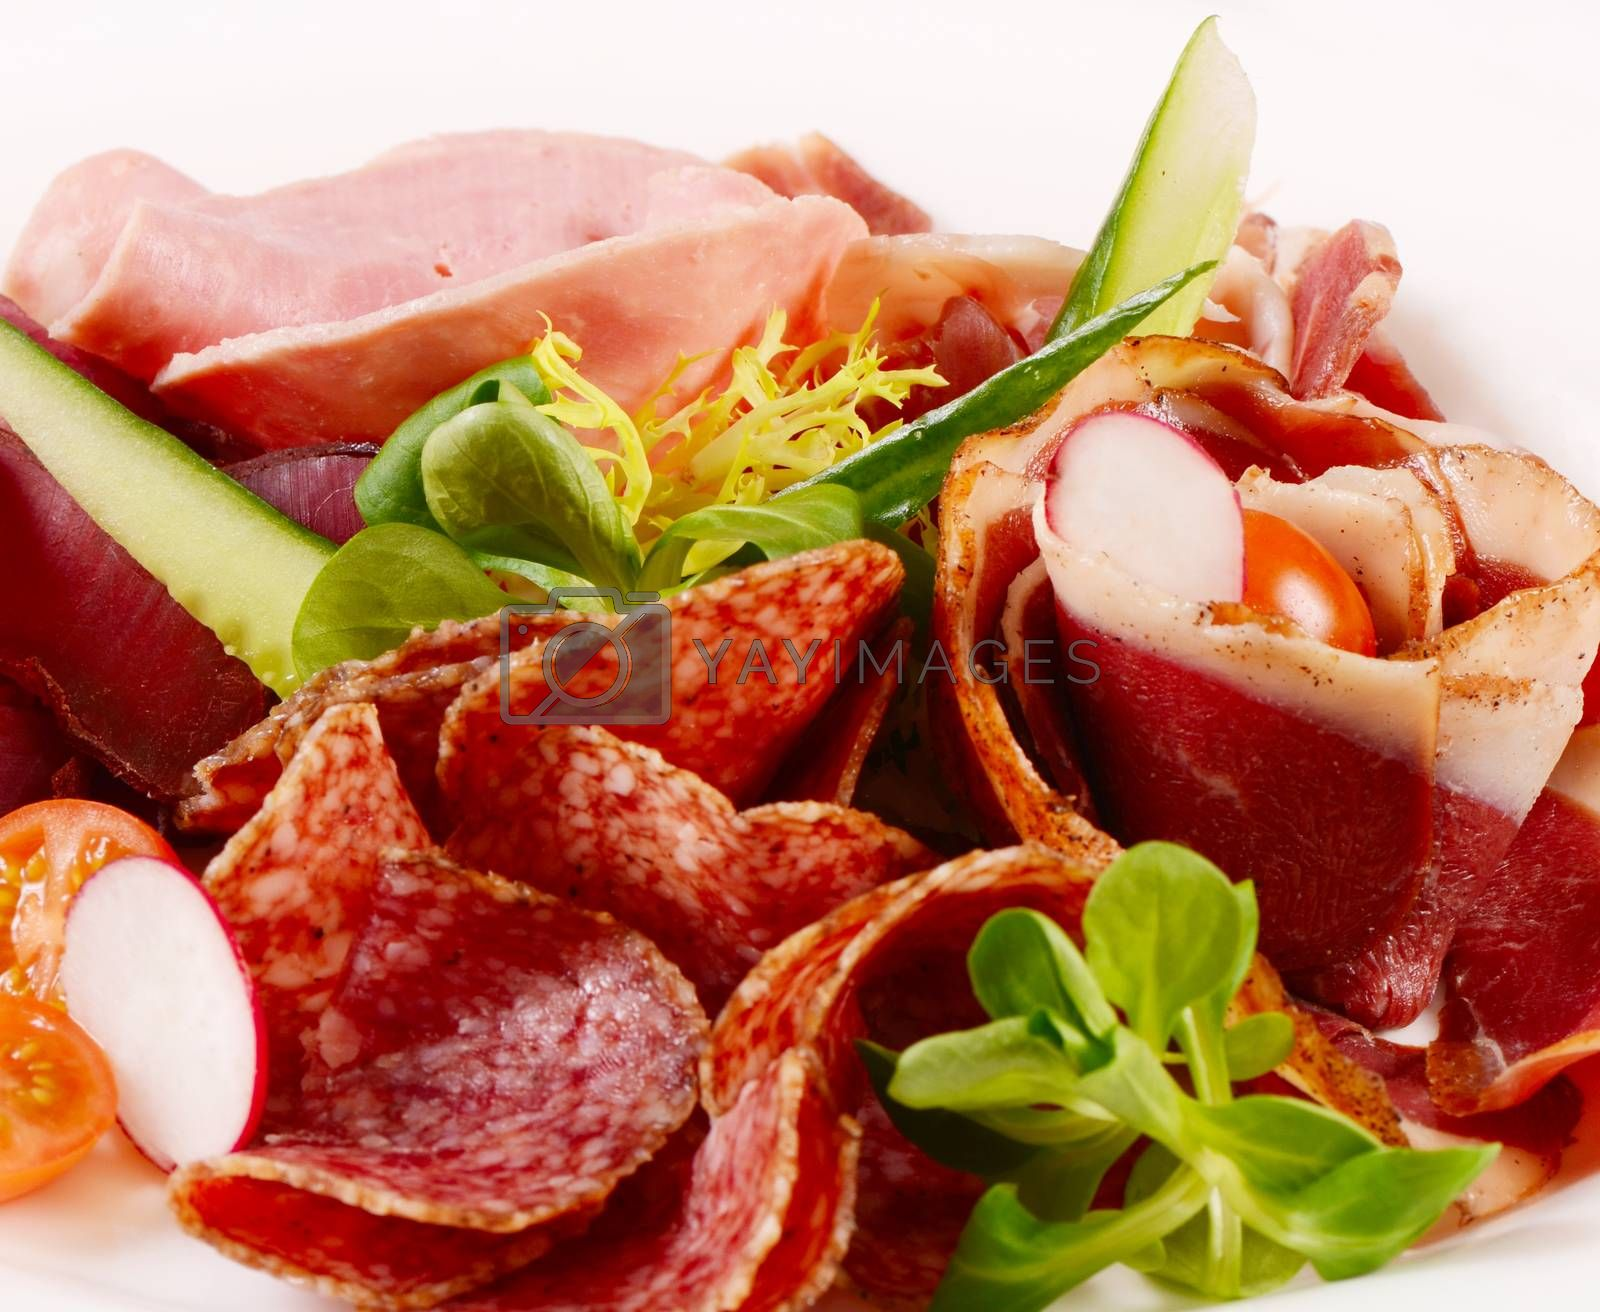 Royalty free image of Assorted Italian sausages close up as a background by SvetaVo